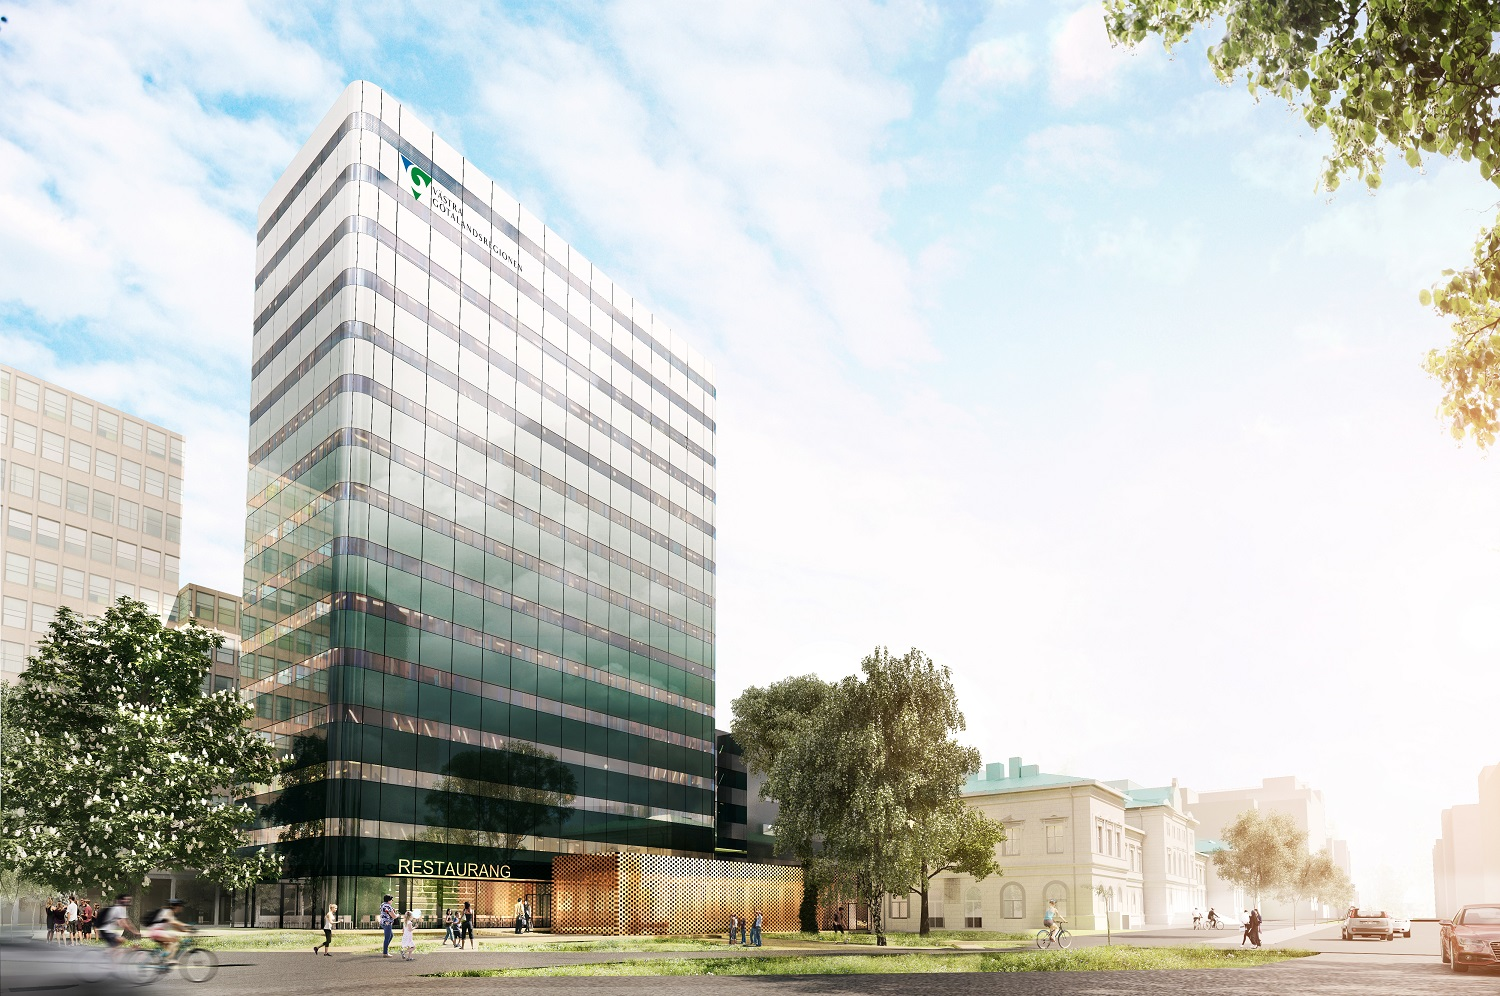 Skanska signs with Västfastigheter for the 2nd phase of the construction of the new Regionens Hus in Gothenburg, Sweden